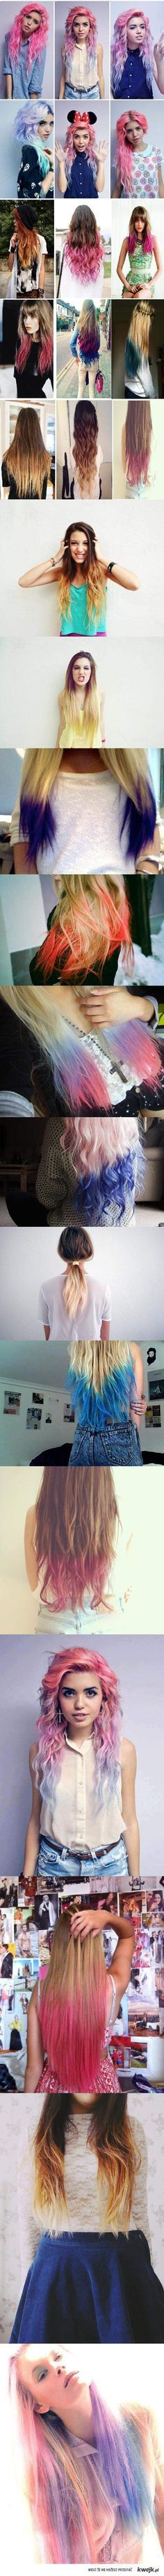 Ombre inspiration